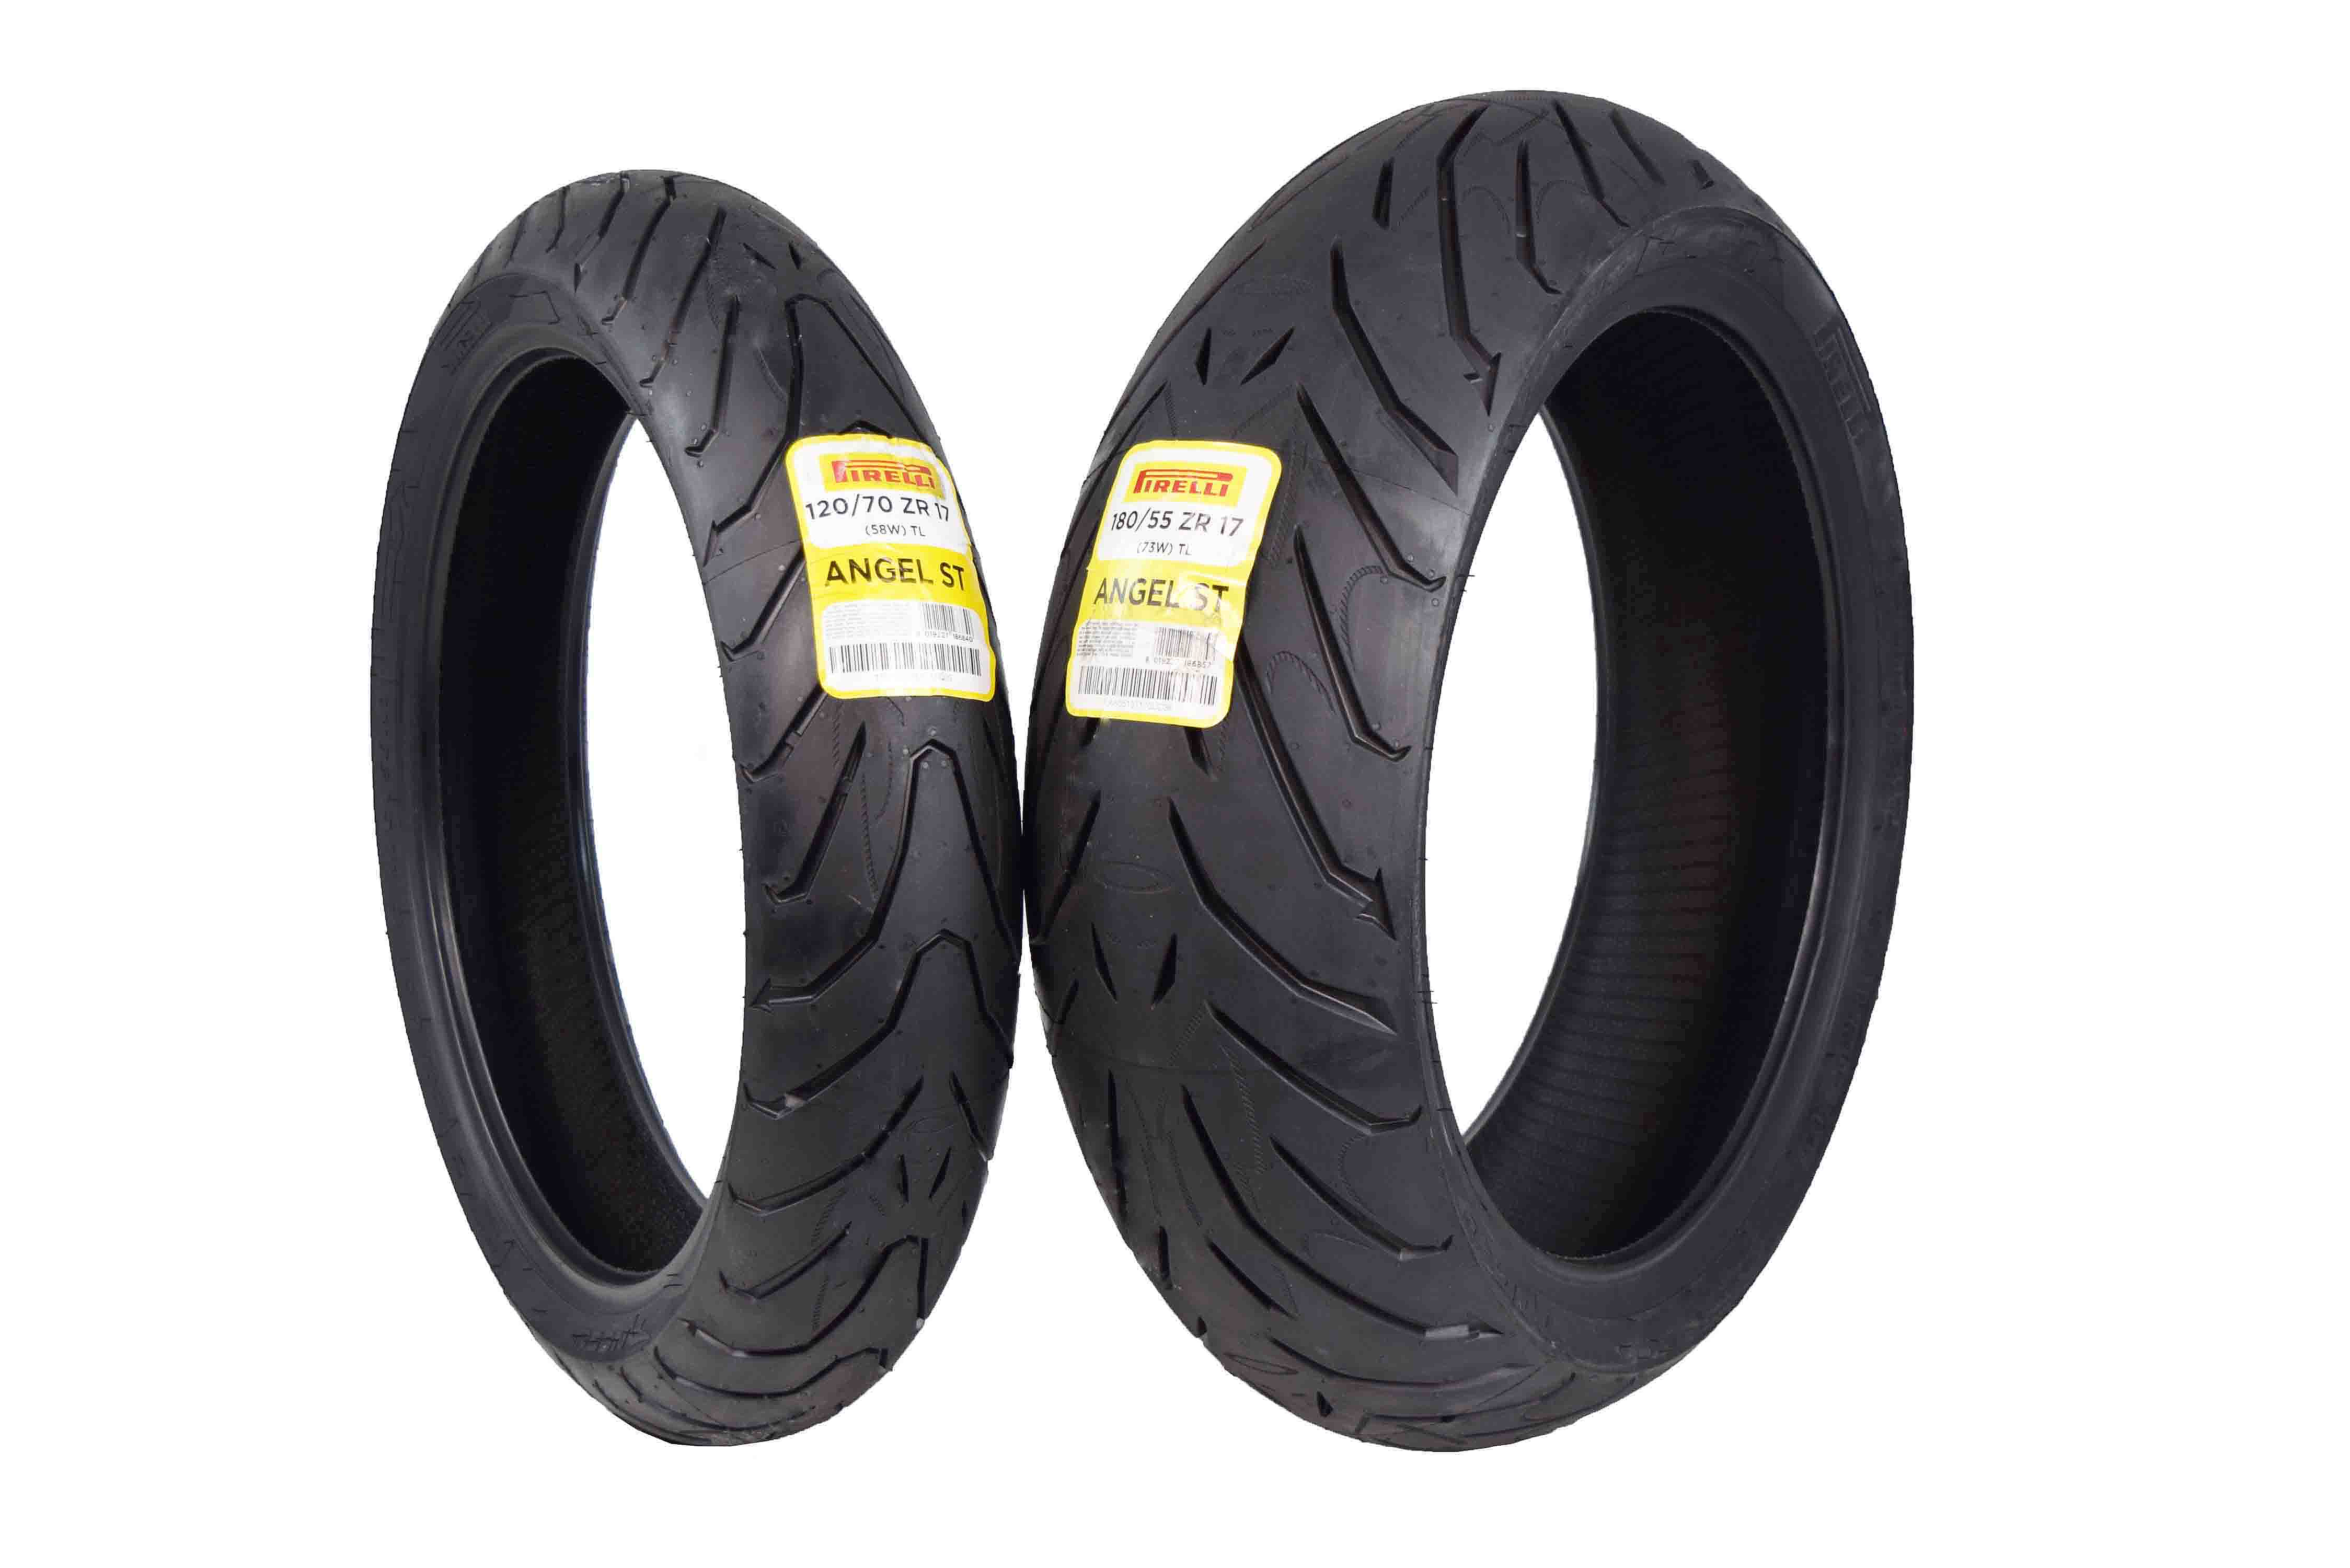 Pirelli-Angel-ST-Front-Rear-Tire-set-120-70-17-180-55-17-Motorcycle-Tires-image-1